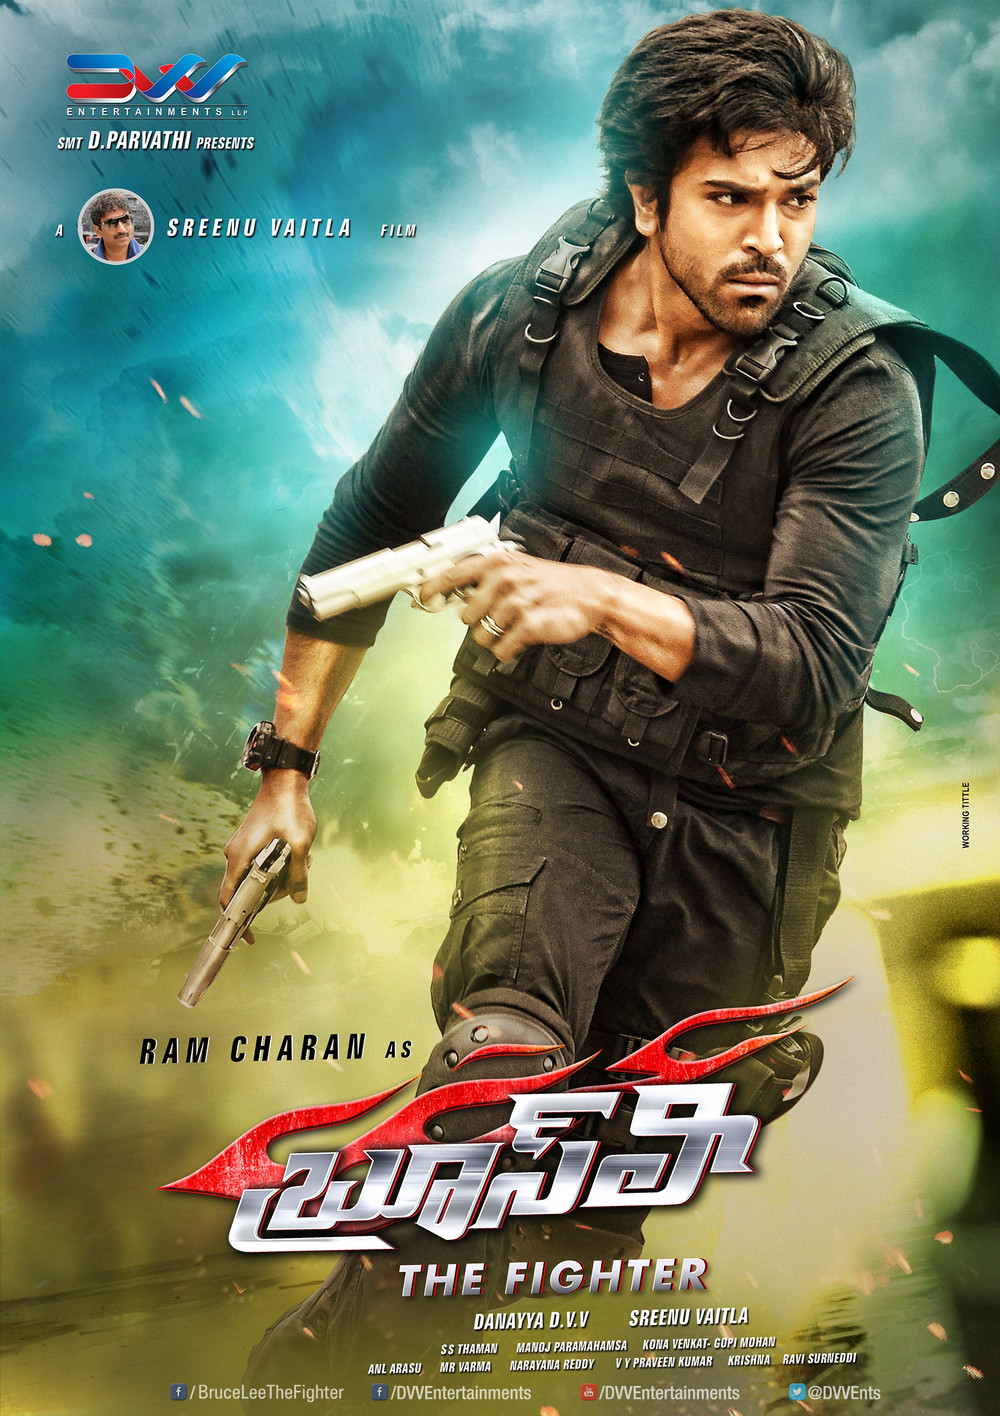 Astounding Ram Charan Bruce Lee Movie Latest New Ultra Hd Posters Wallpapers Hairstyles For Men Maxibearus